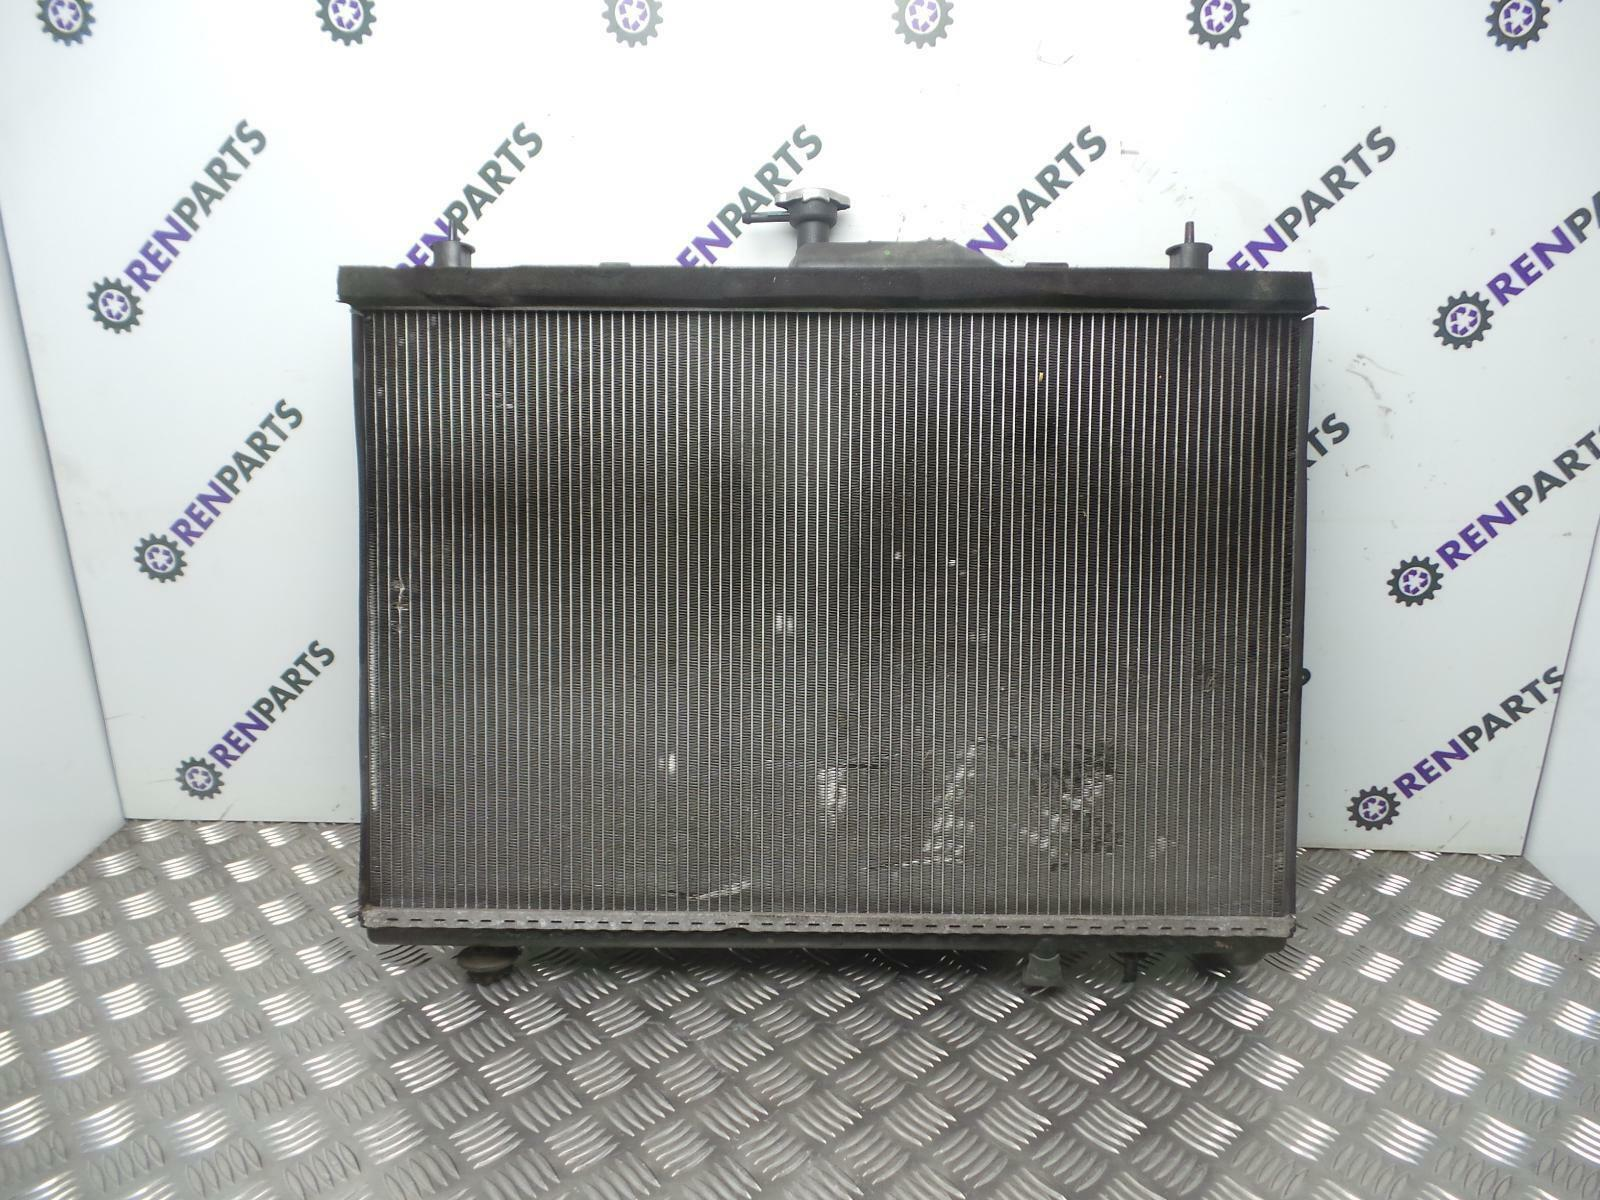 LAND ROVER DEFENDER 2.2 2.4 TD4 PUMA ENGINE COOLING RADIATOR 2007-2016 PCC001020